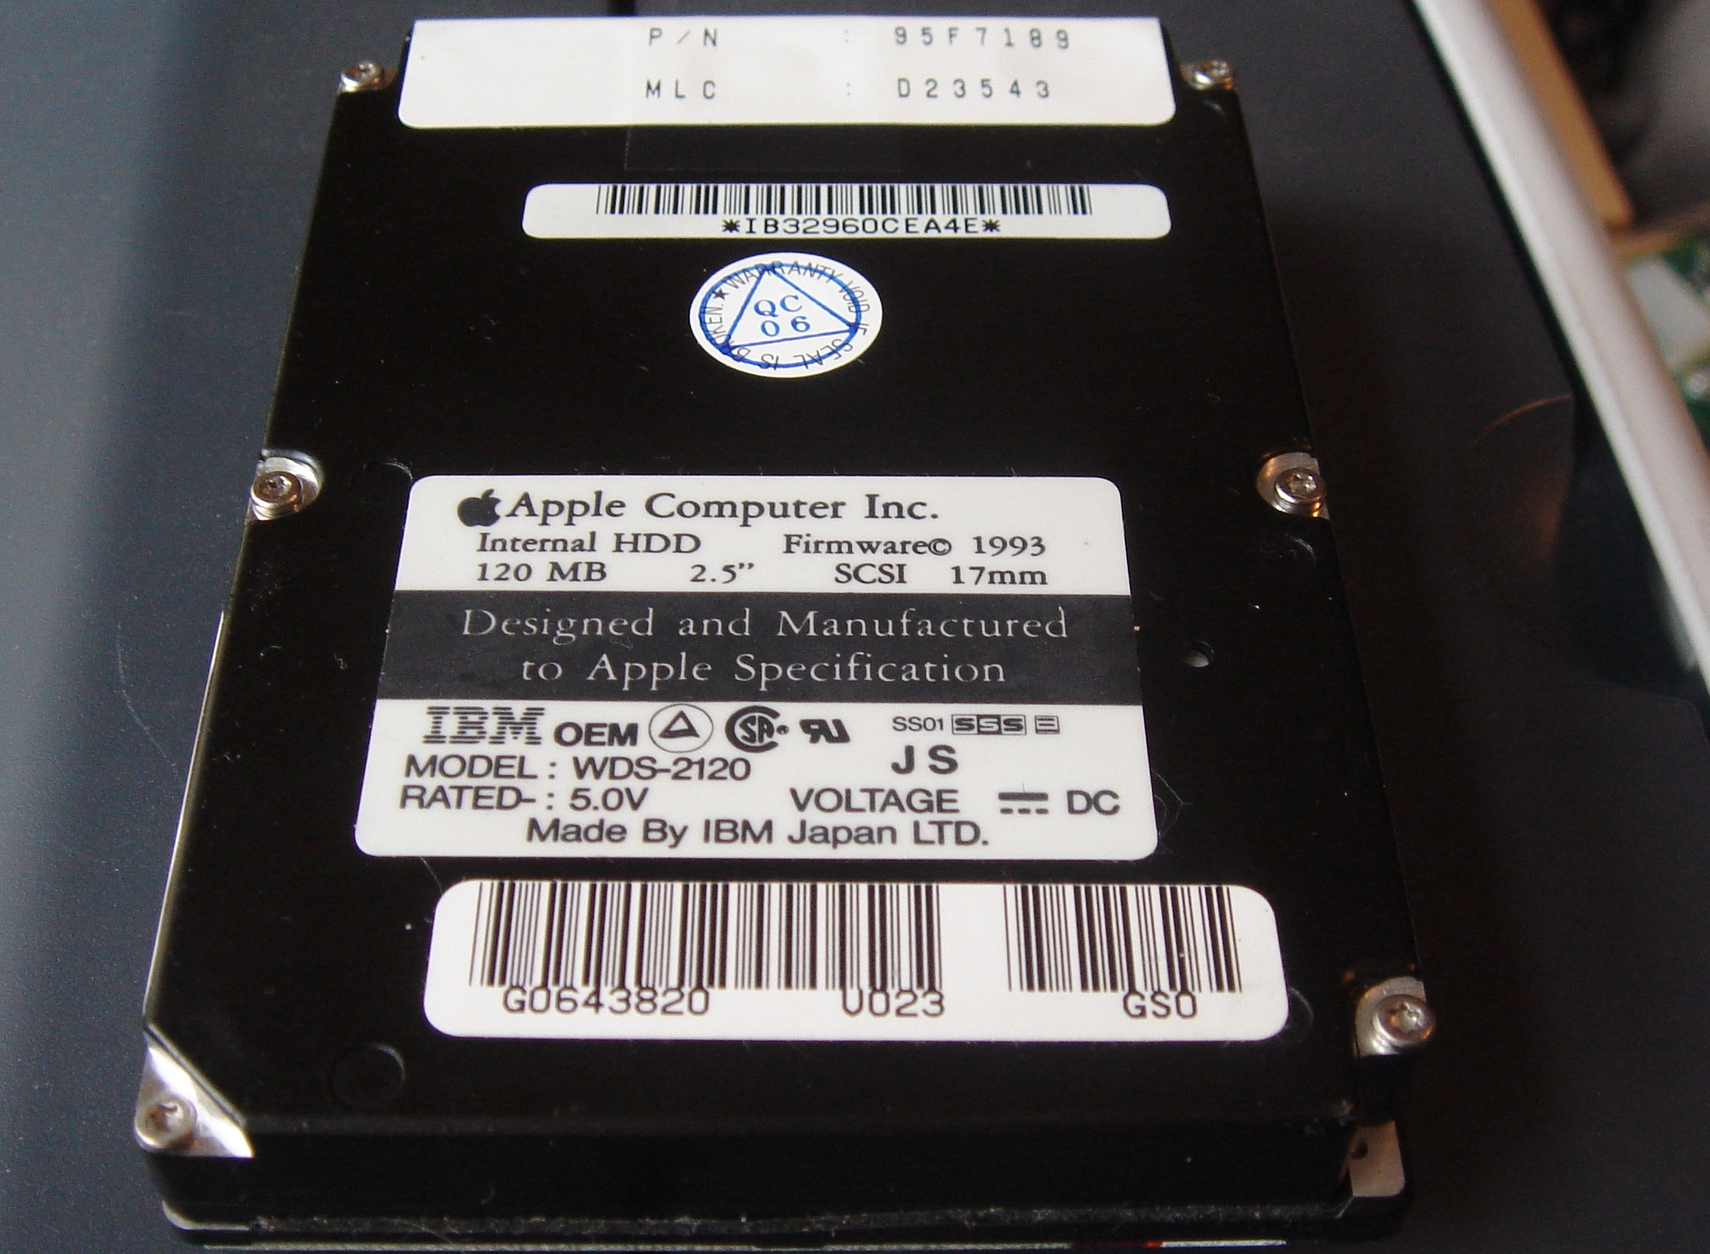 A 120mb WDS-2120 IBM/Apple Hard drive shown with the label facing upwards taken out of a Mac PowerBook 145B. This 2.5